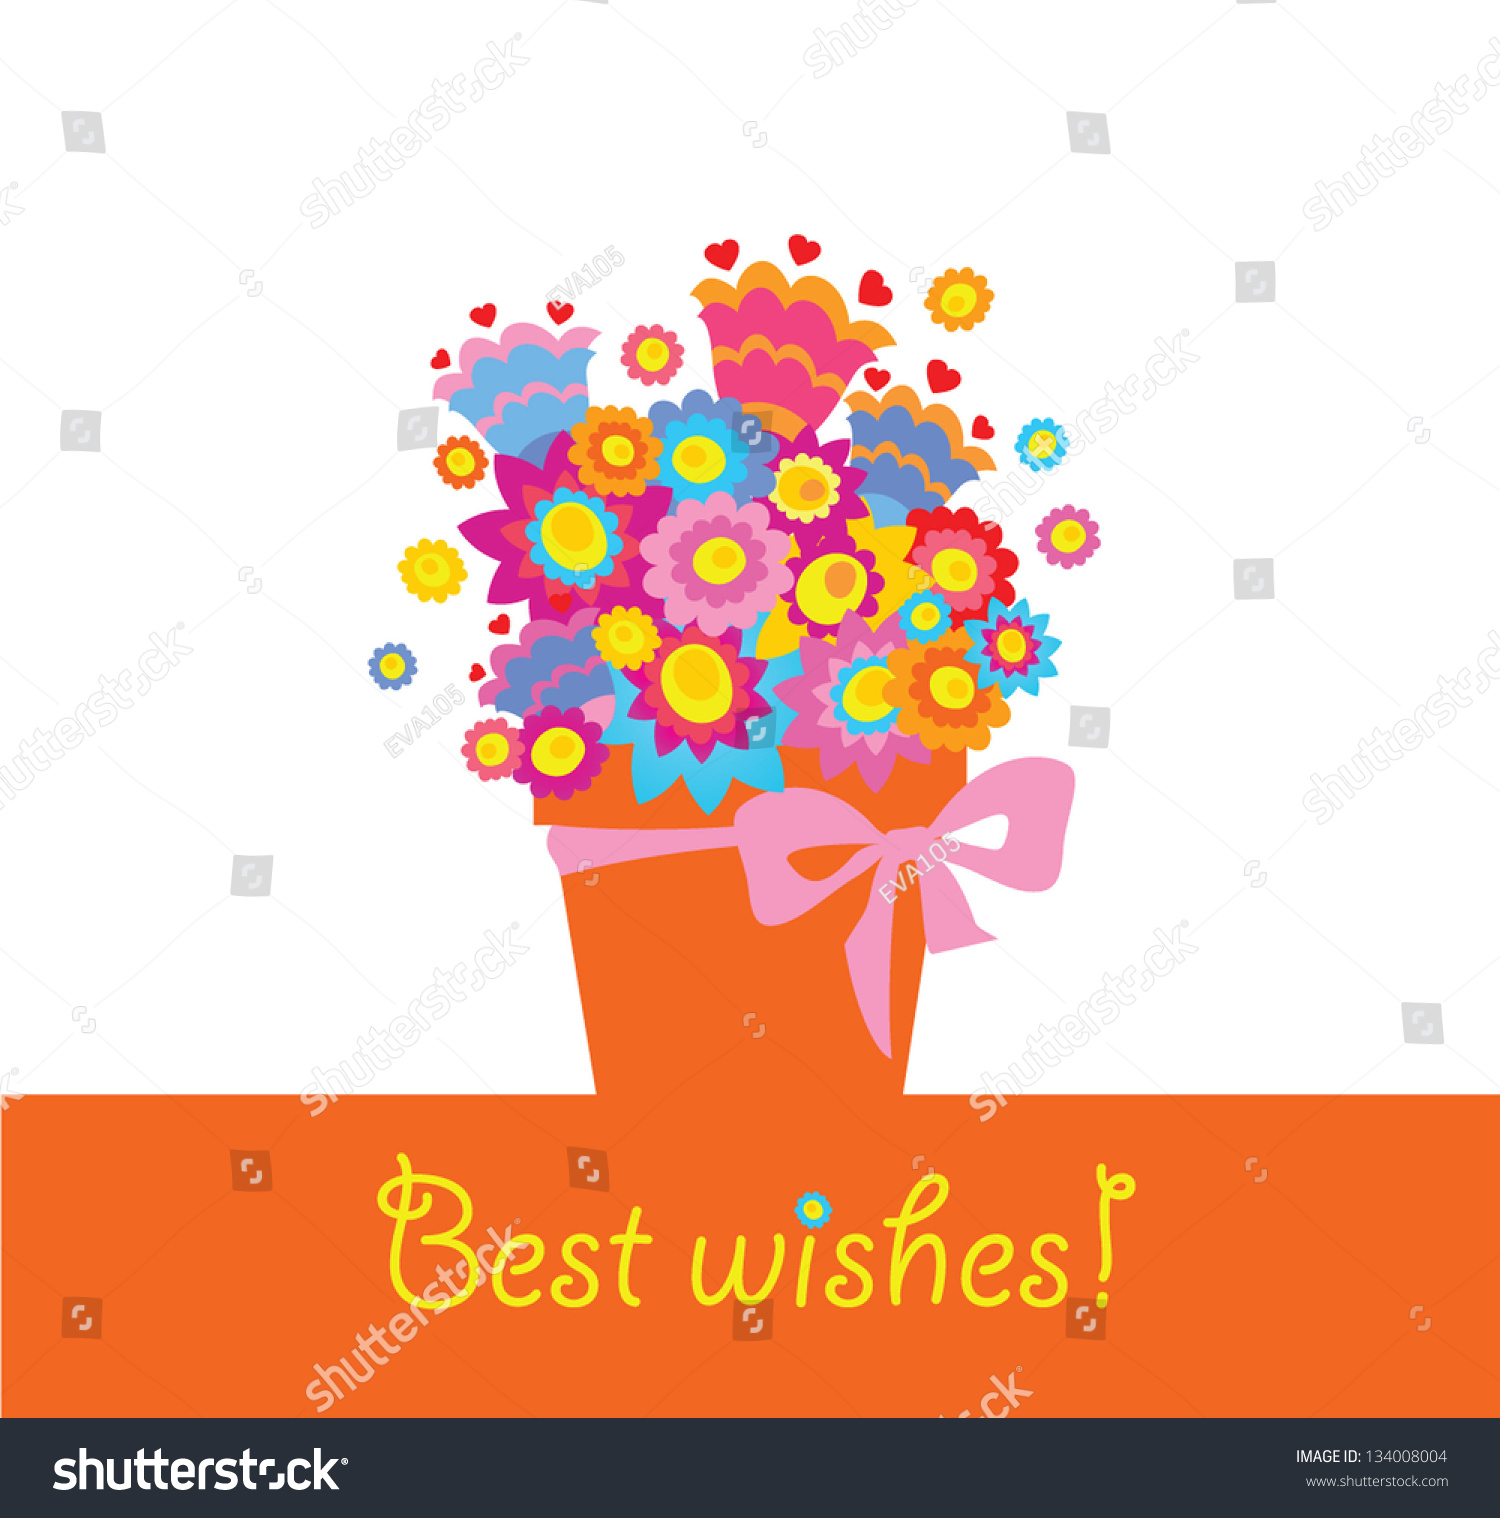 Best Wishes! Stock Vector Illustration 134008004